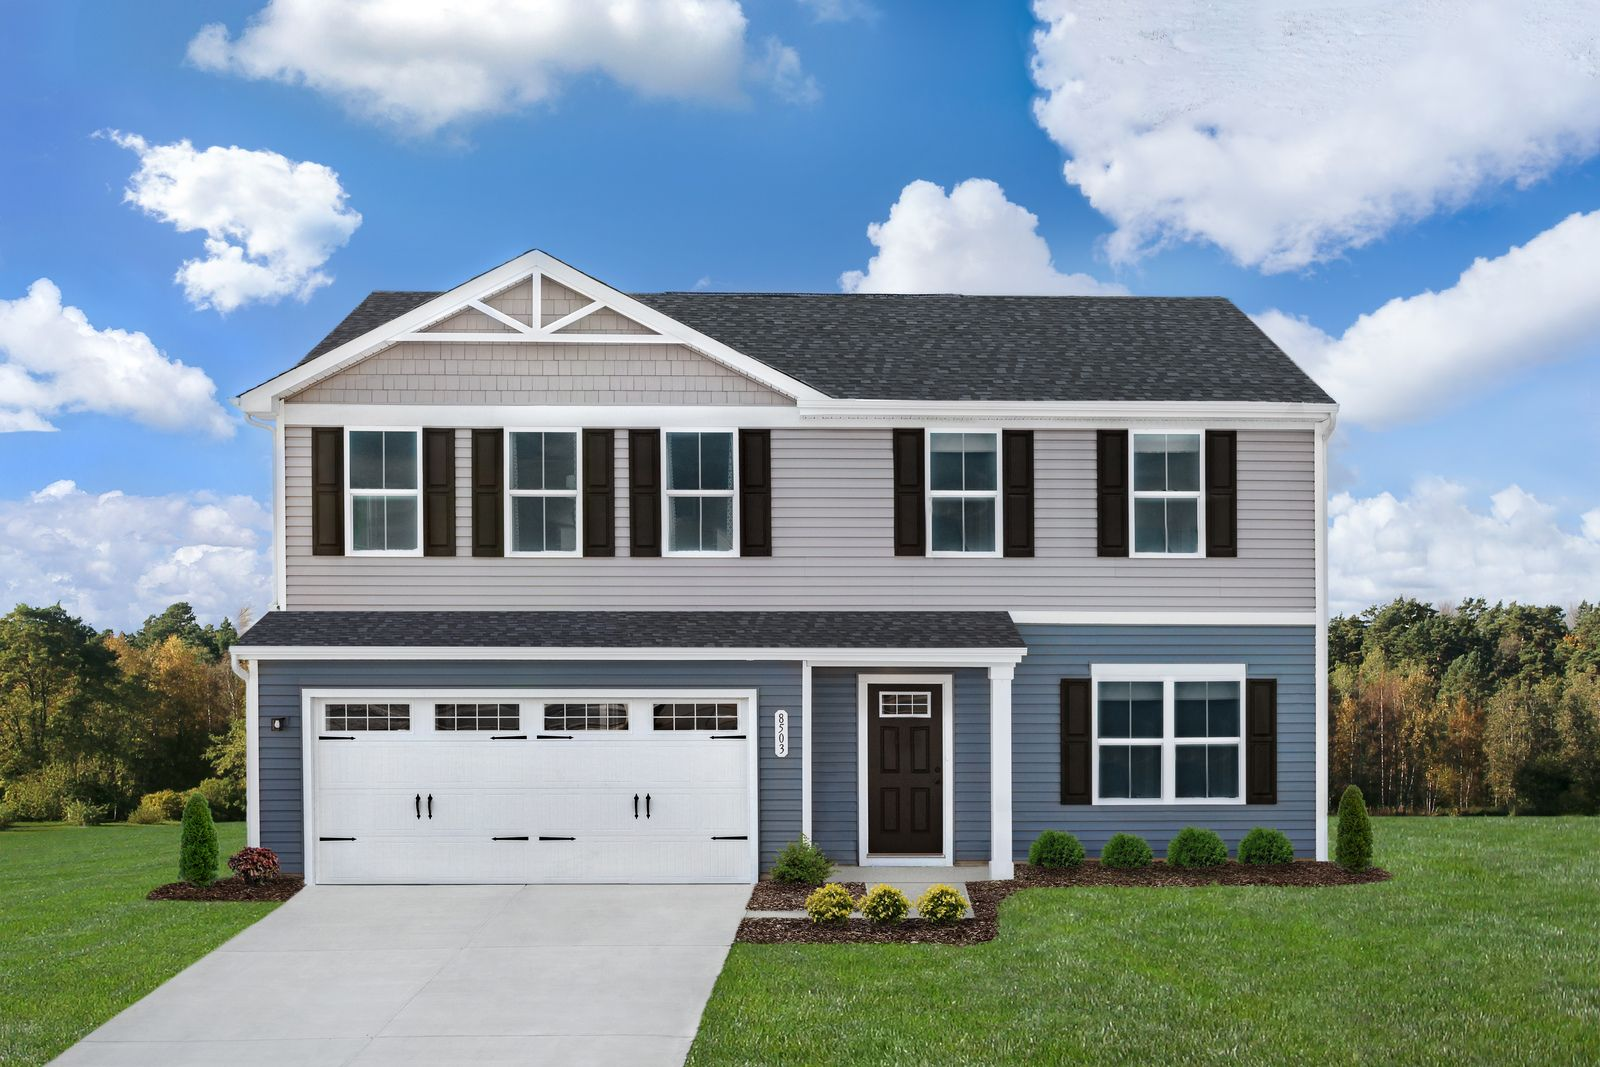 New Homes in Christiana:Rutherford Co.'s lowest-priced new single family homes. Own within minutes of Murfreesboro conveniences and shopping off Route 231.Schedule a visit today!